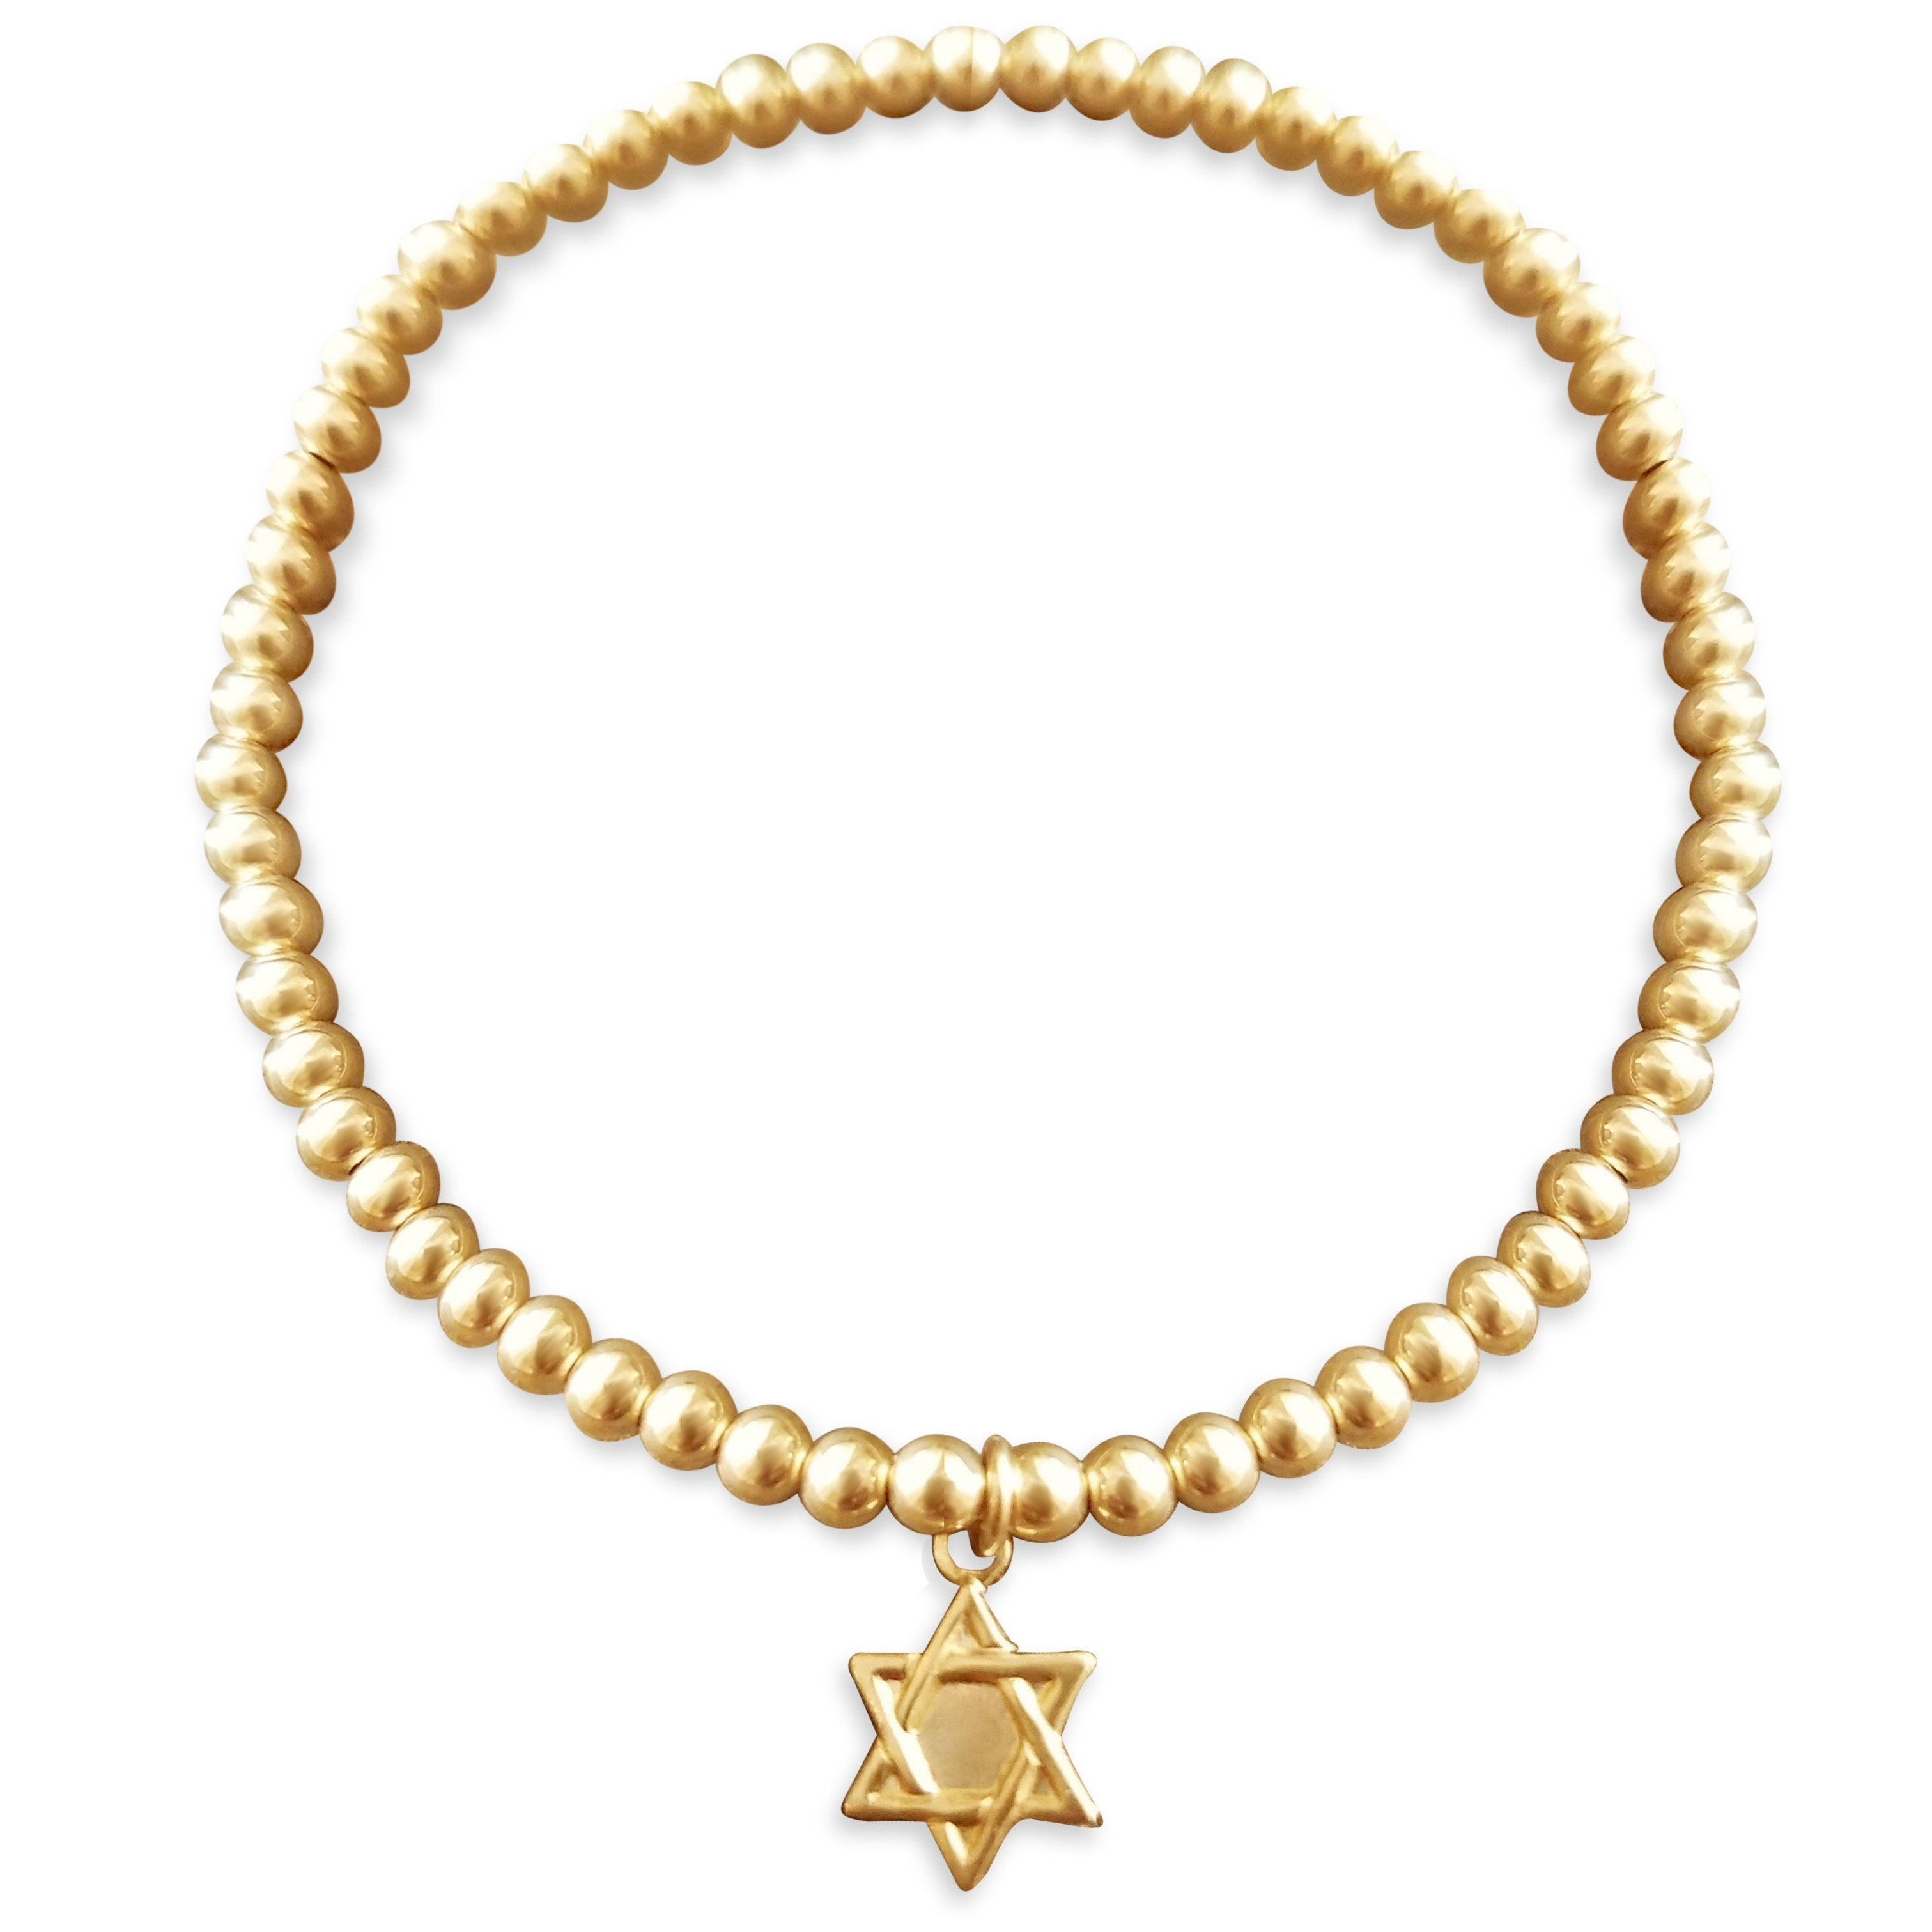 Bead Bracelet with Star of David in Yellow Gold